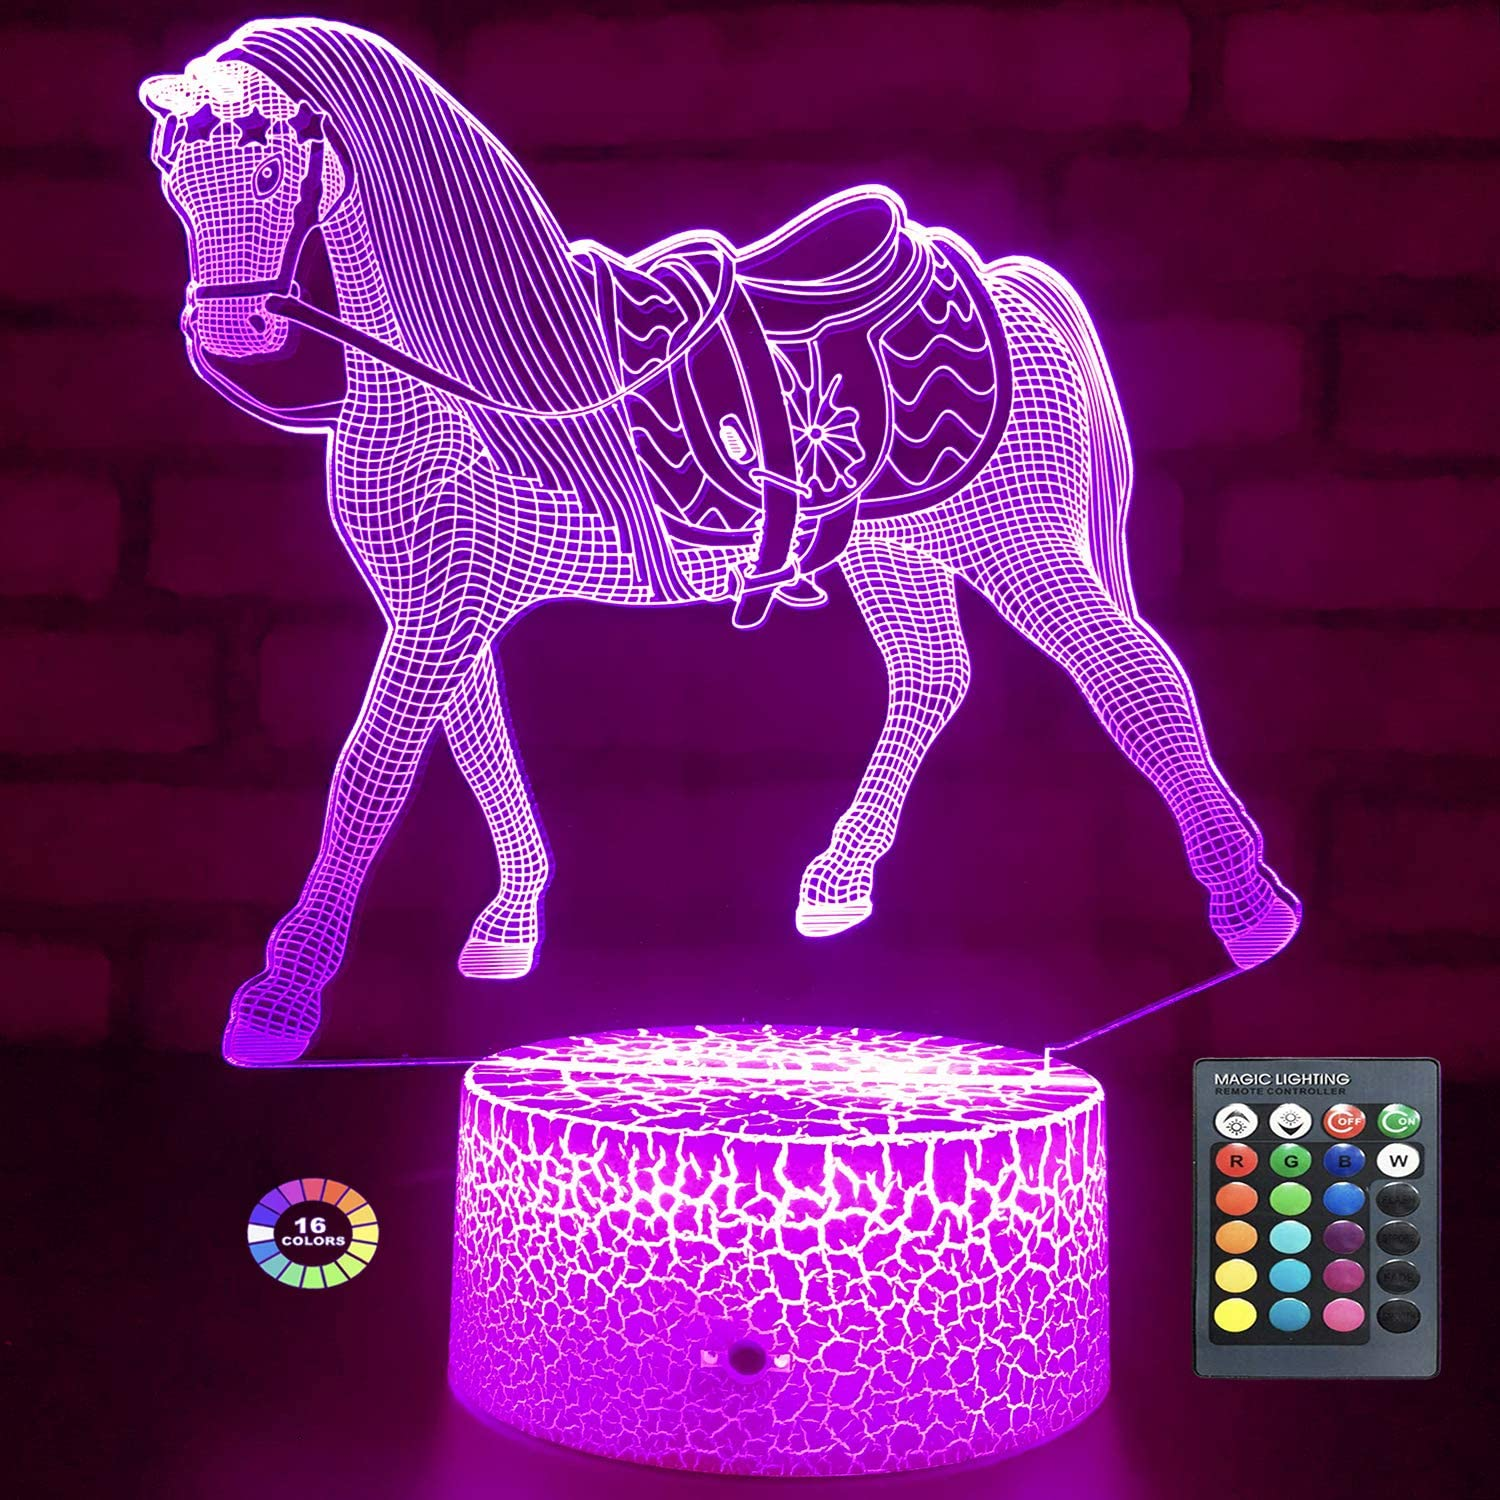 Menzee Horse Gifts for Girls,Horse Lamp Night Light for Kids Room Decor with Timer Remote Control & Smart Touch 7 Colors Horse Toys Birthday Gifts for 2 3 4 5 6 7 8 9 Year Old Girl Gifts